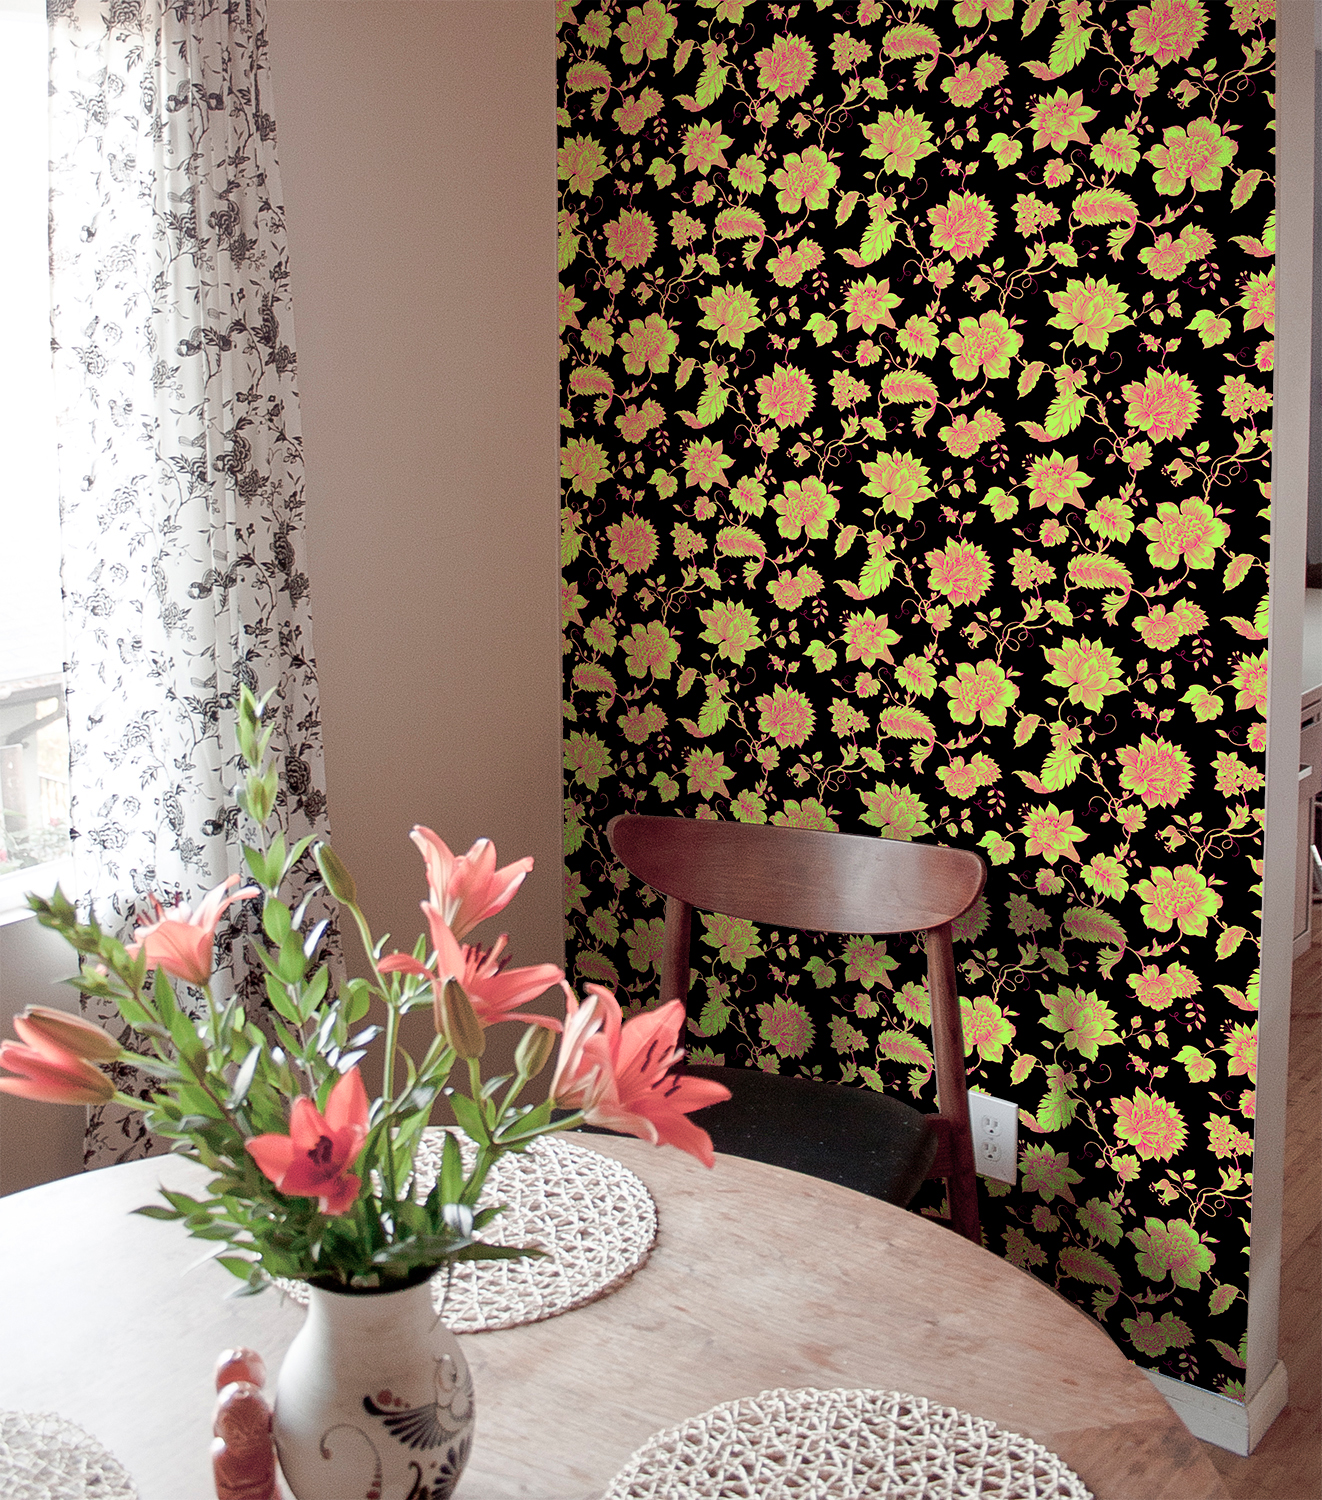 diy decor wallpaper tiles for renters apartment decor floral accent wall easy temporary